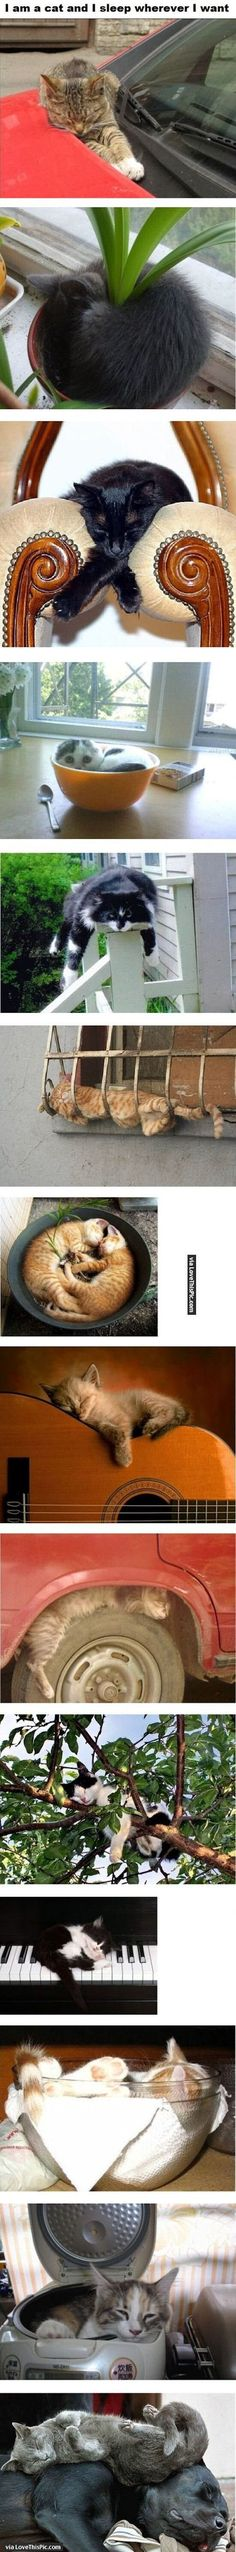 I Am A Cat I Sleep Wear I Want cute animals cat cats adorable animal kittens pets kitten funny pictures funny animals funny cats